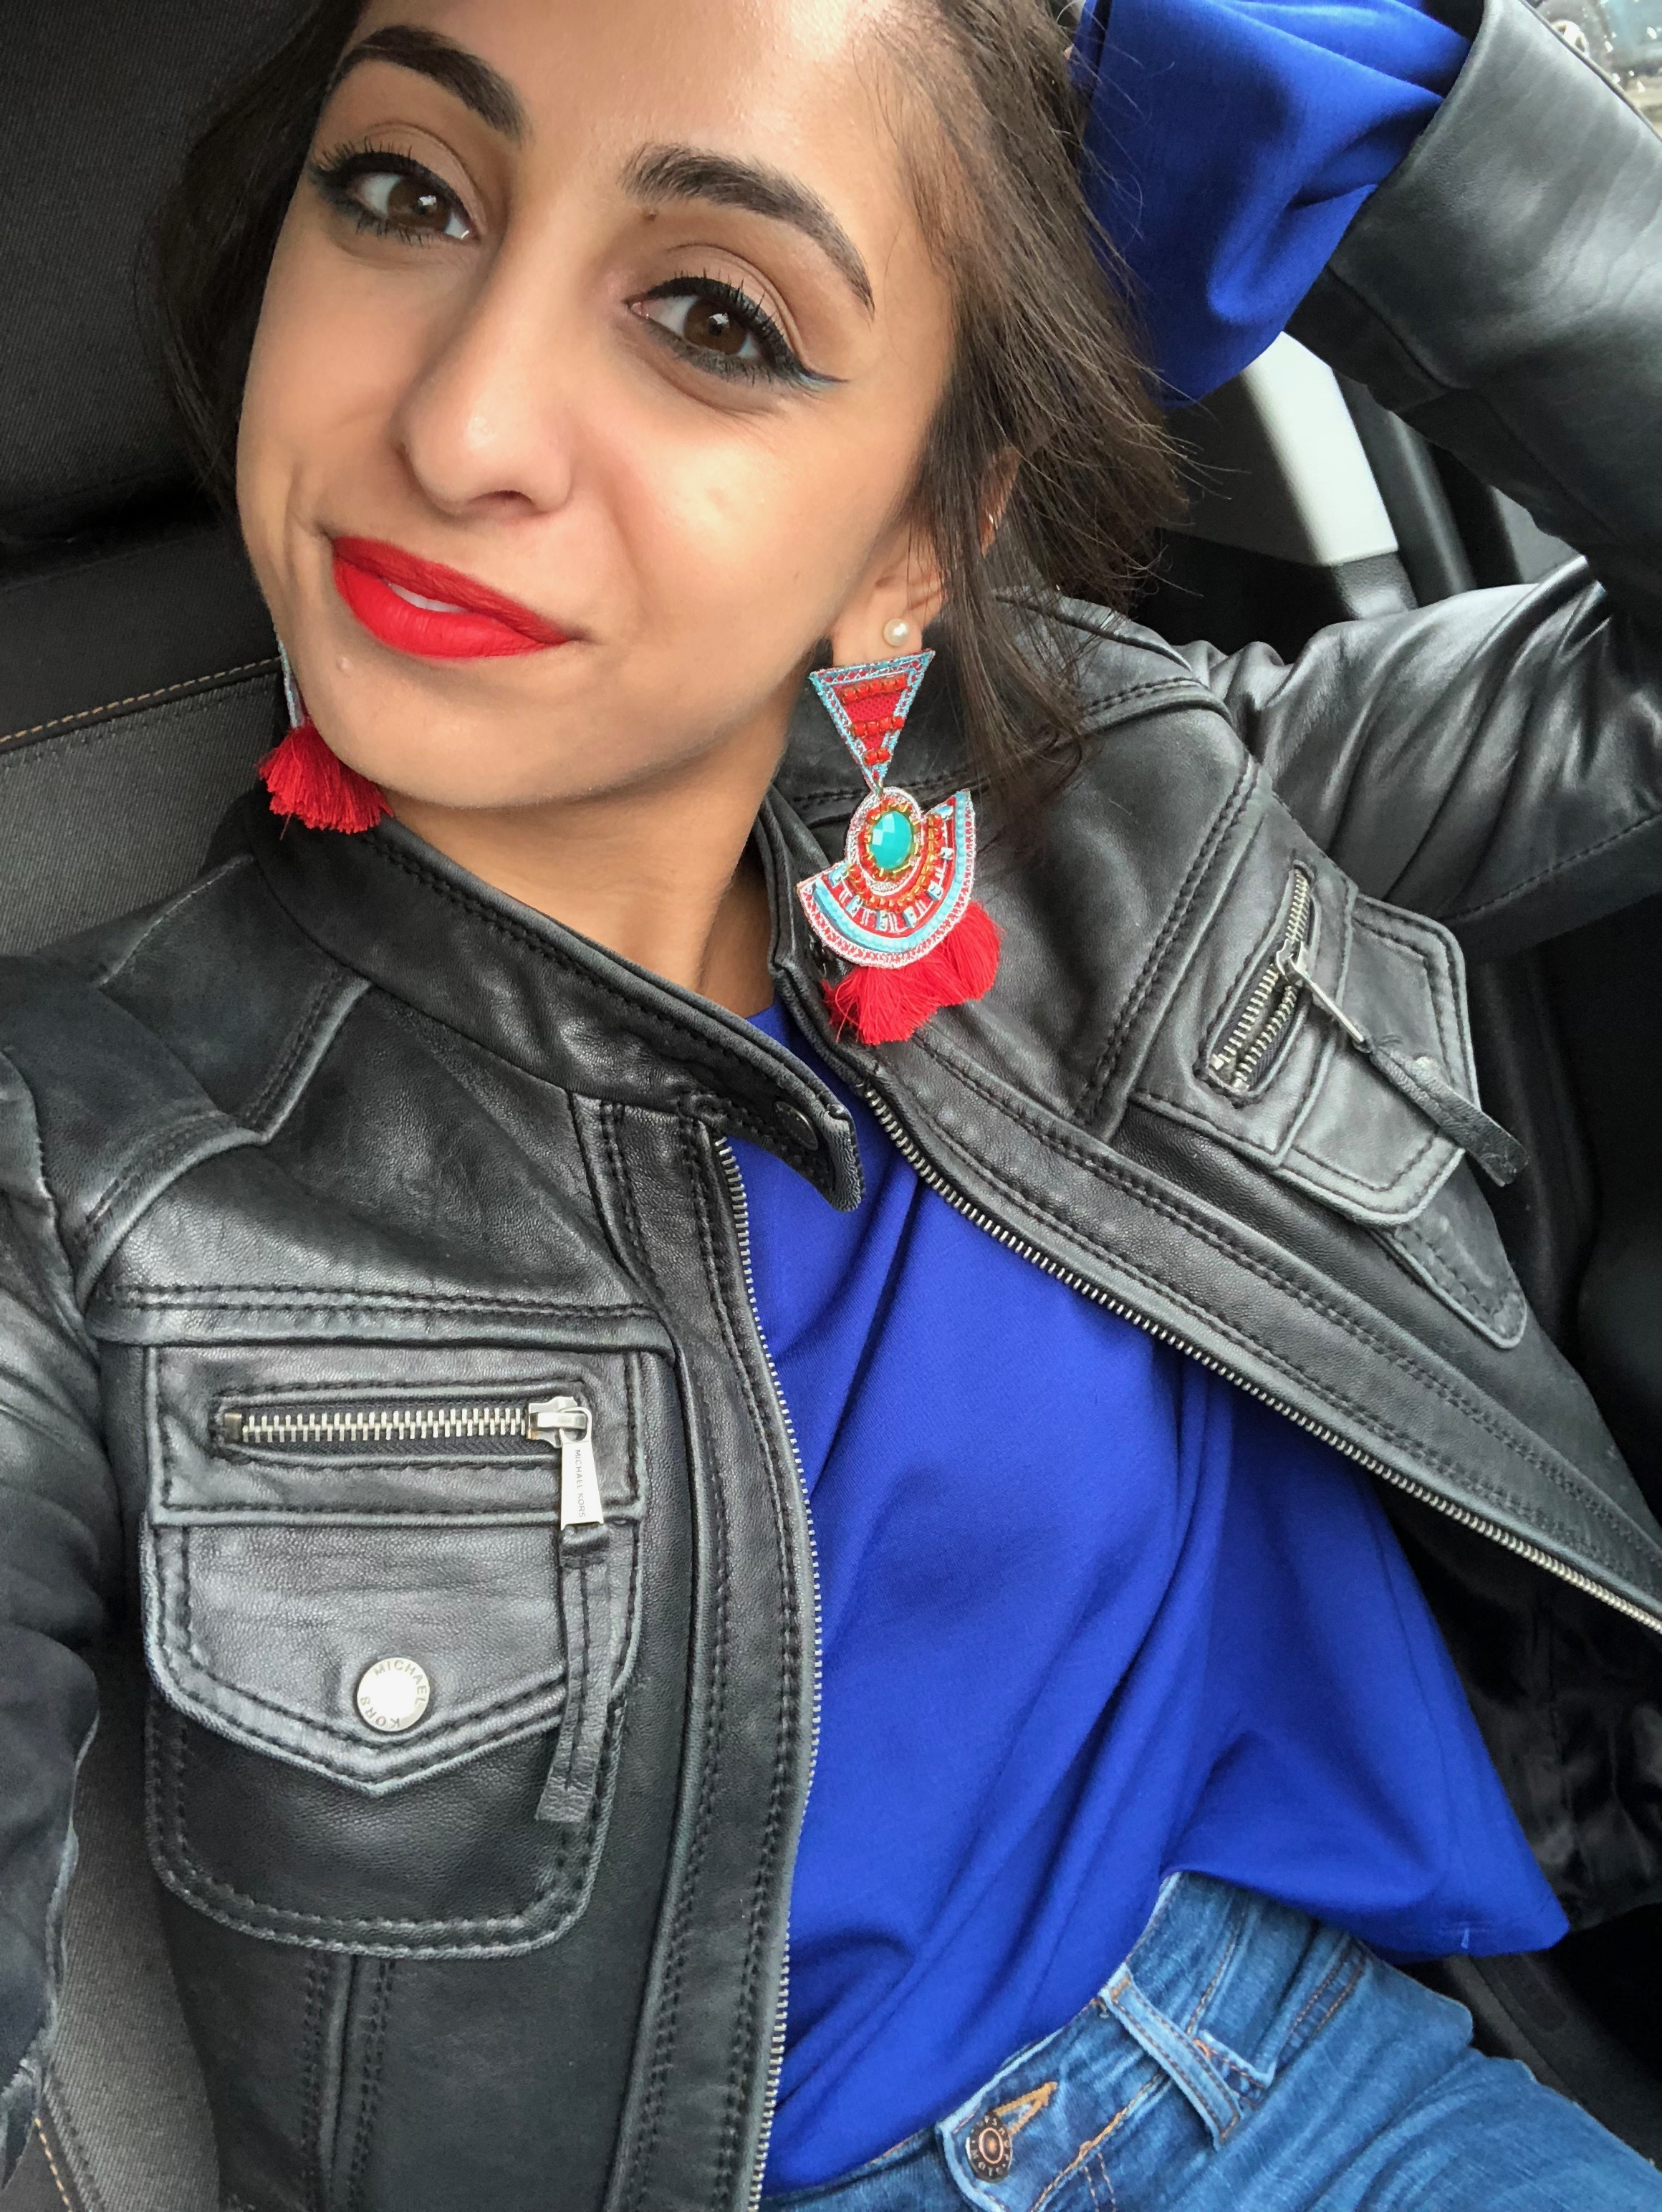 This fun and colorful look is one I love for days that I feel like playing up my makeup. When you look at just the outfit, it's all pretty simple, but what makes it work are all of the little details, such as the sleeves on the top which stick out of the leather jacket, or the earrings that match the makeup and top. The leather jacket here tones the boldness down. The top is from Nordstrom Rack, jeans from Topshop, earrings from TjMaxx, and booties from Steve Madden.